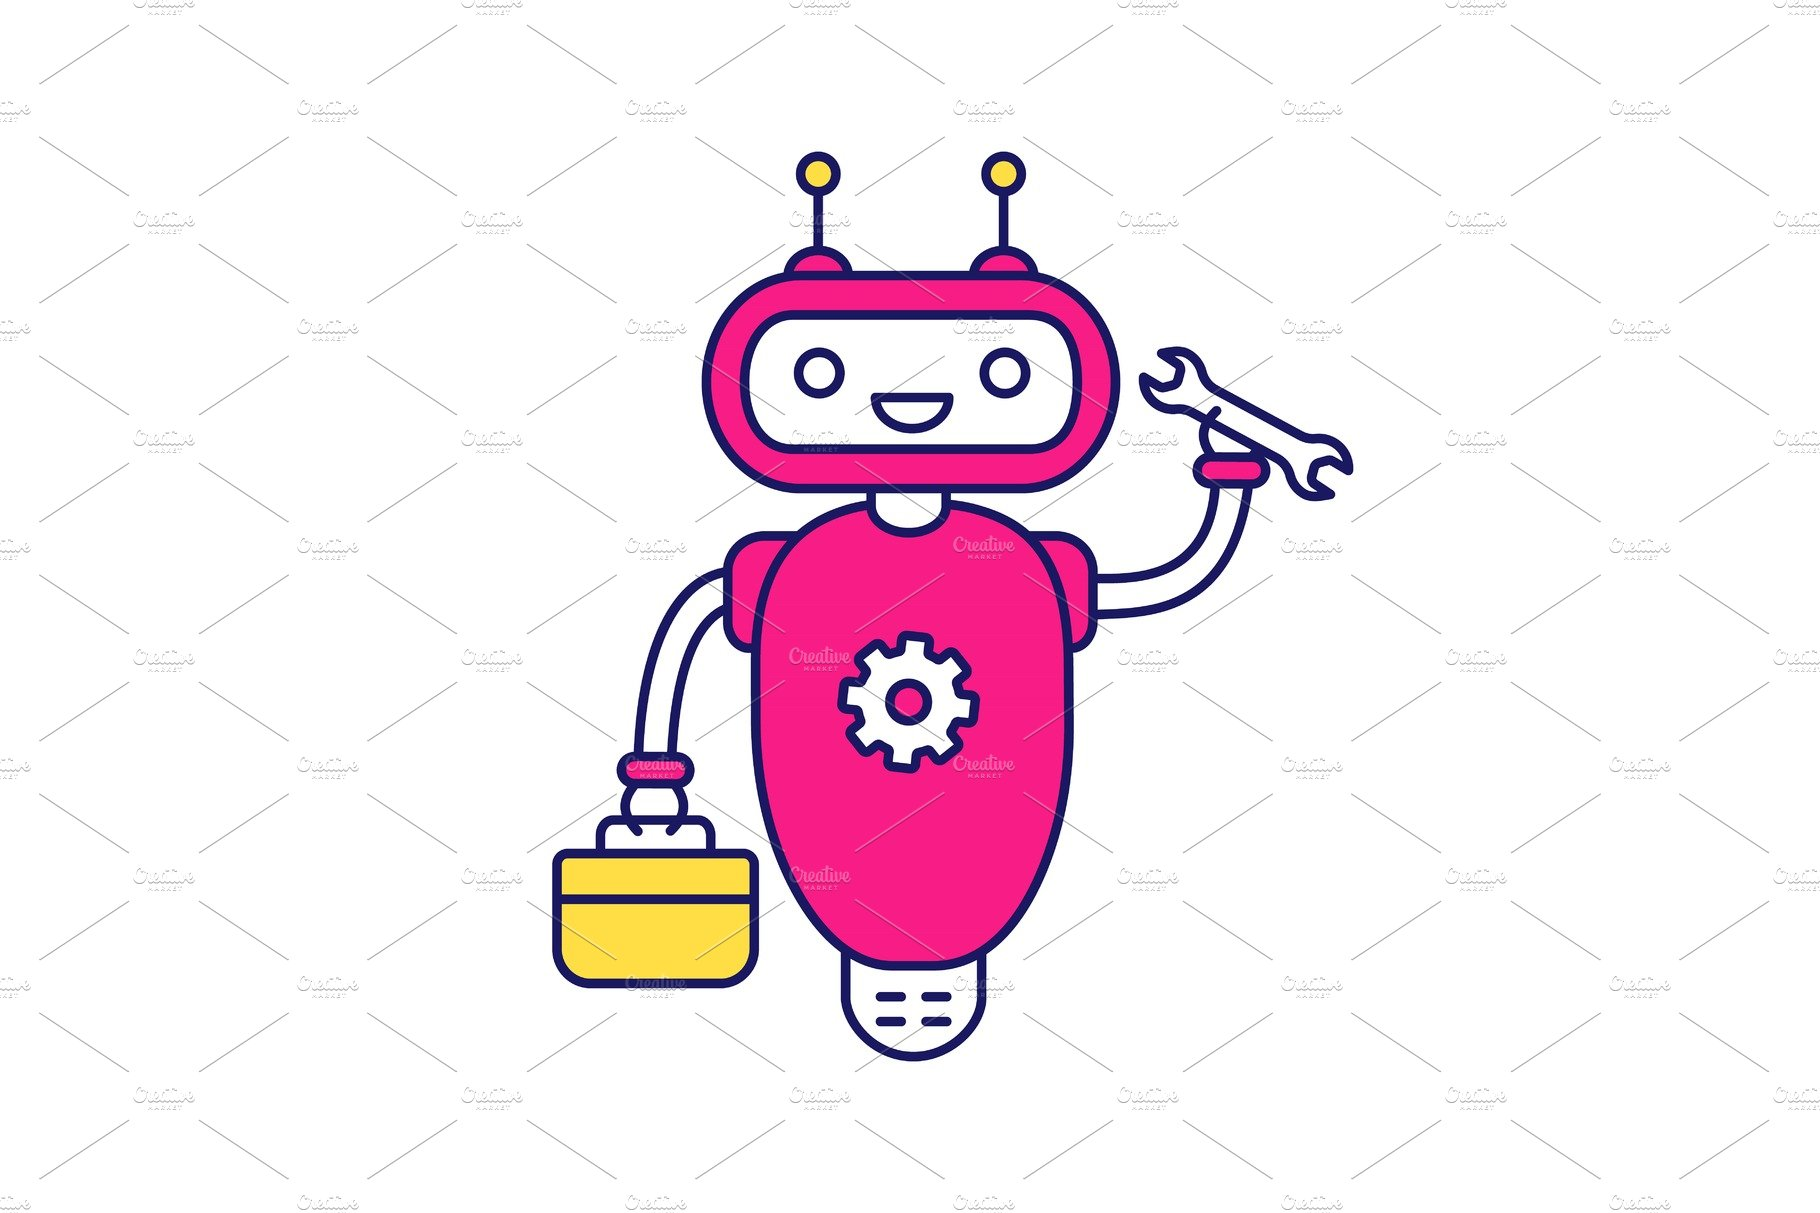 Repair chatbot color icon.